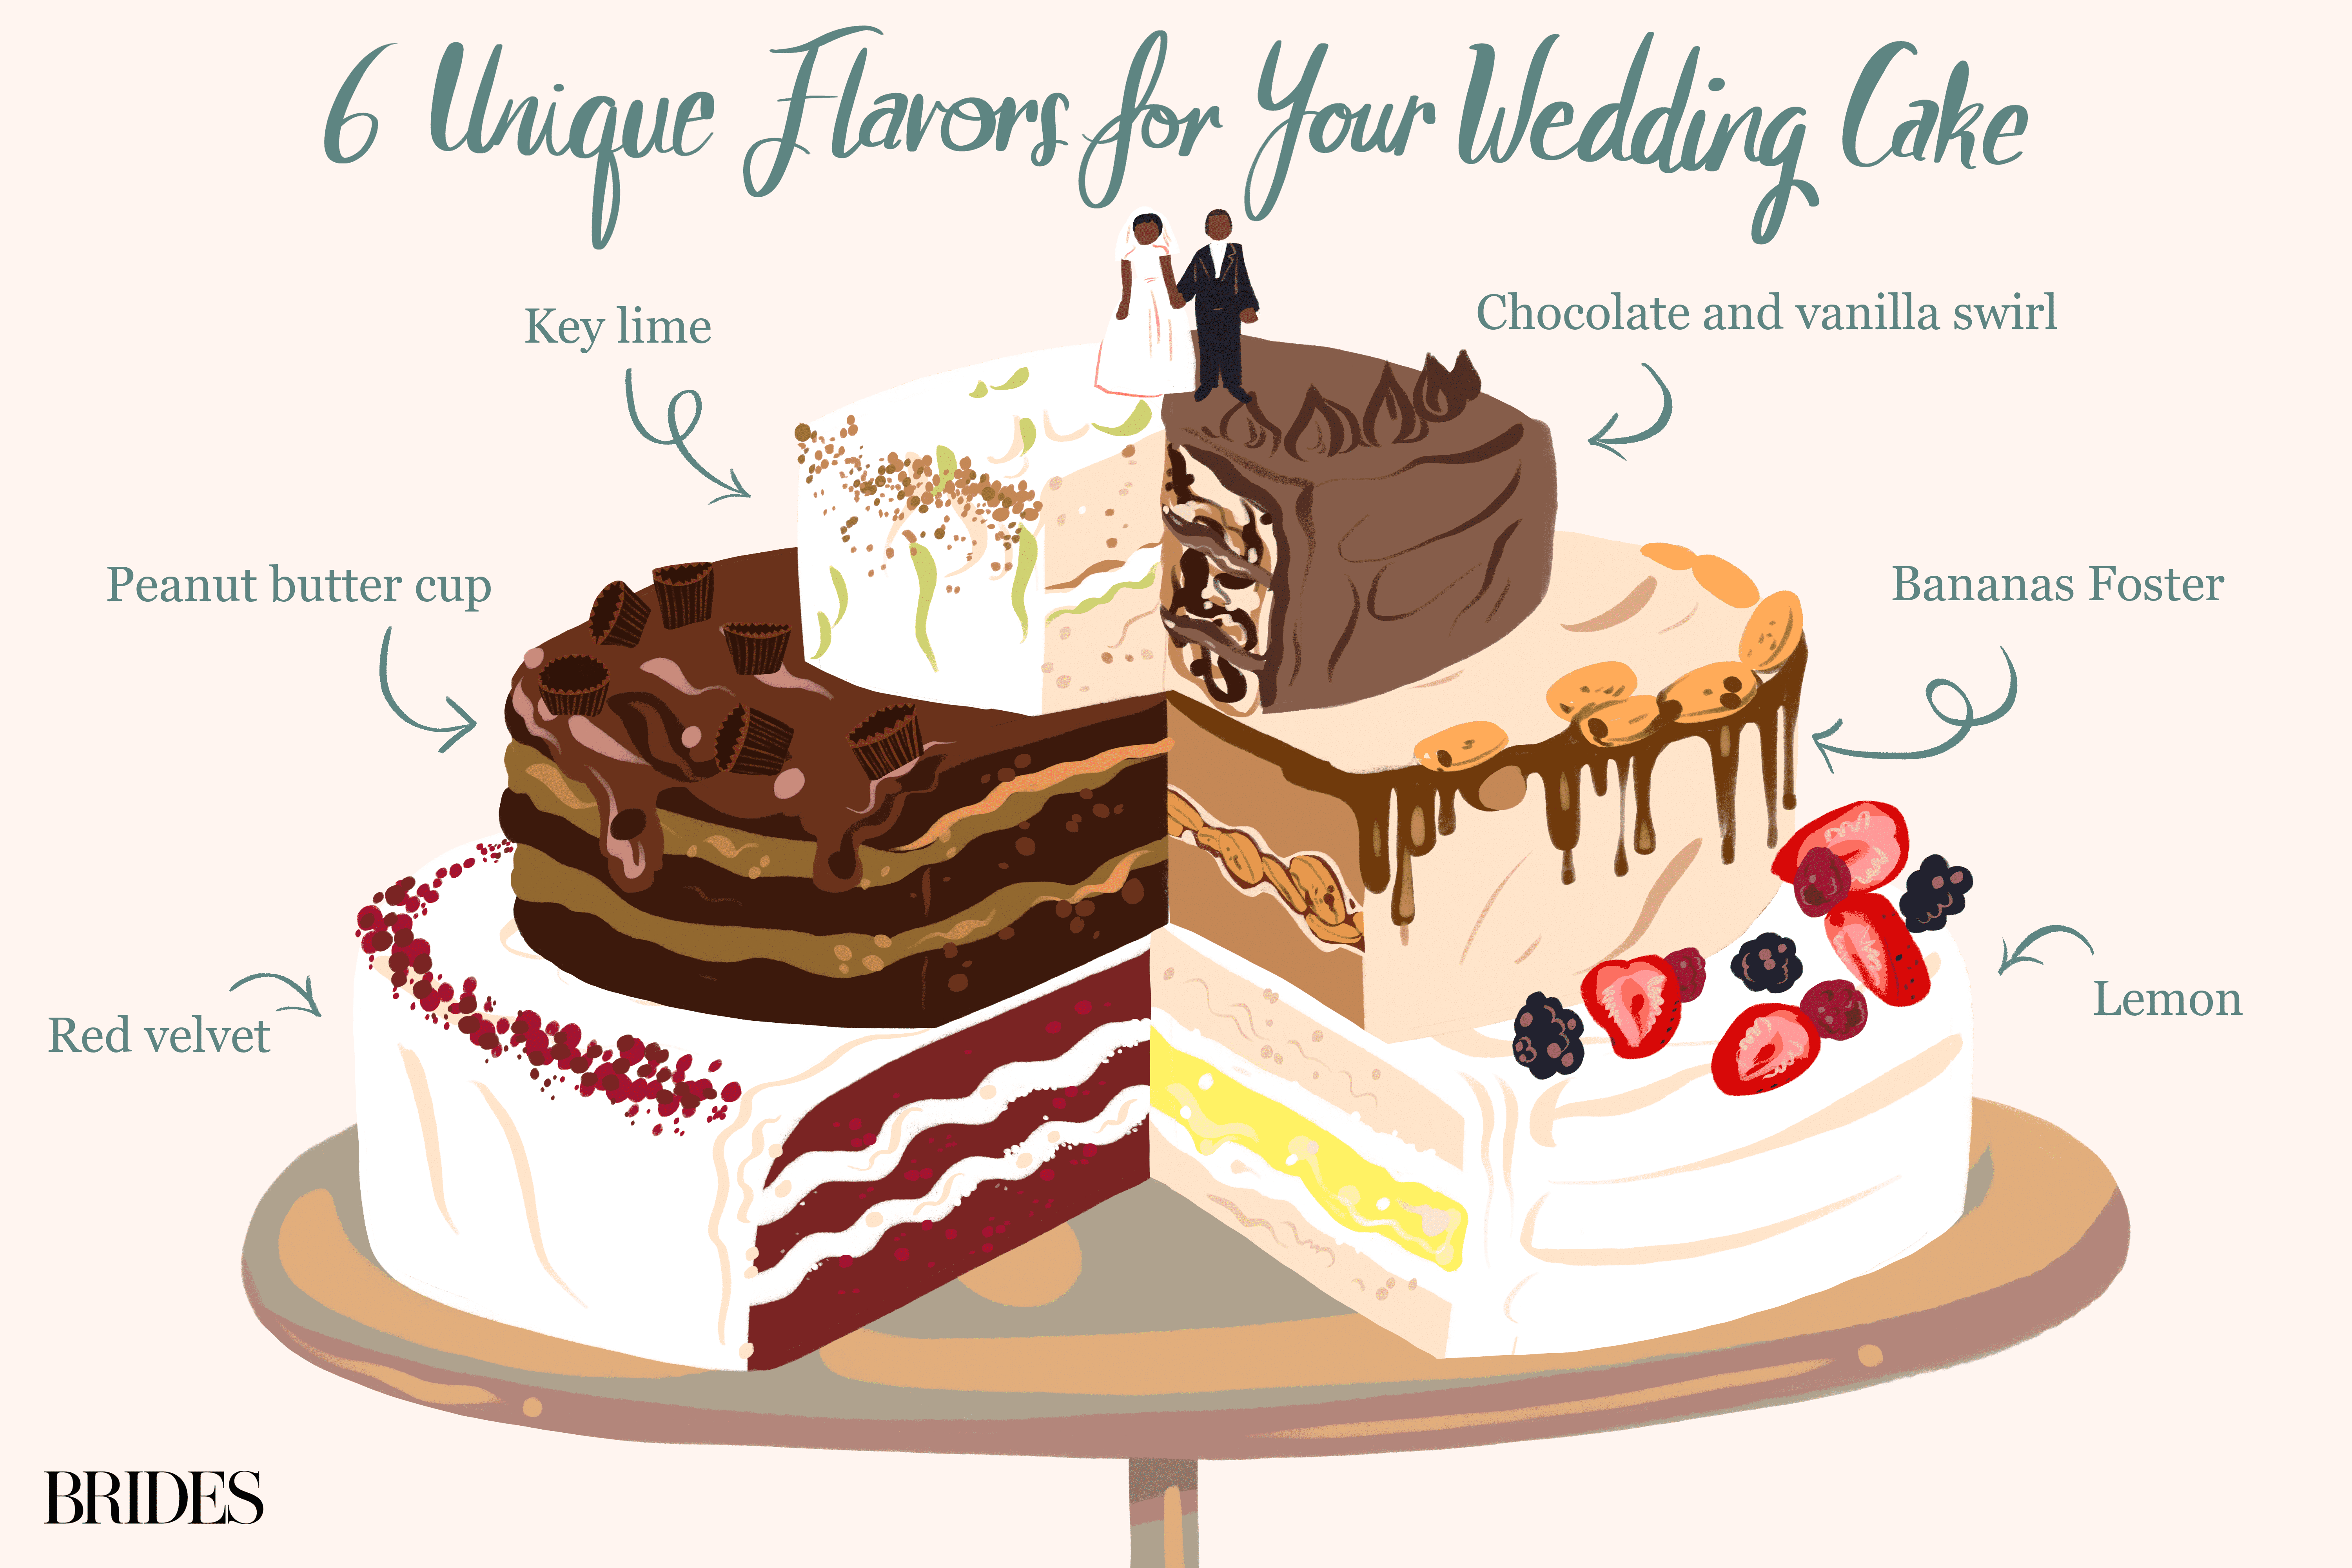 10 Unique Wedding Cake Flavors to Consider